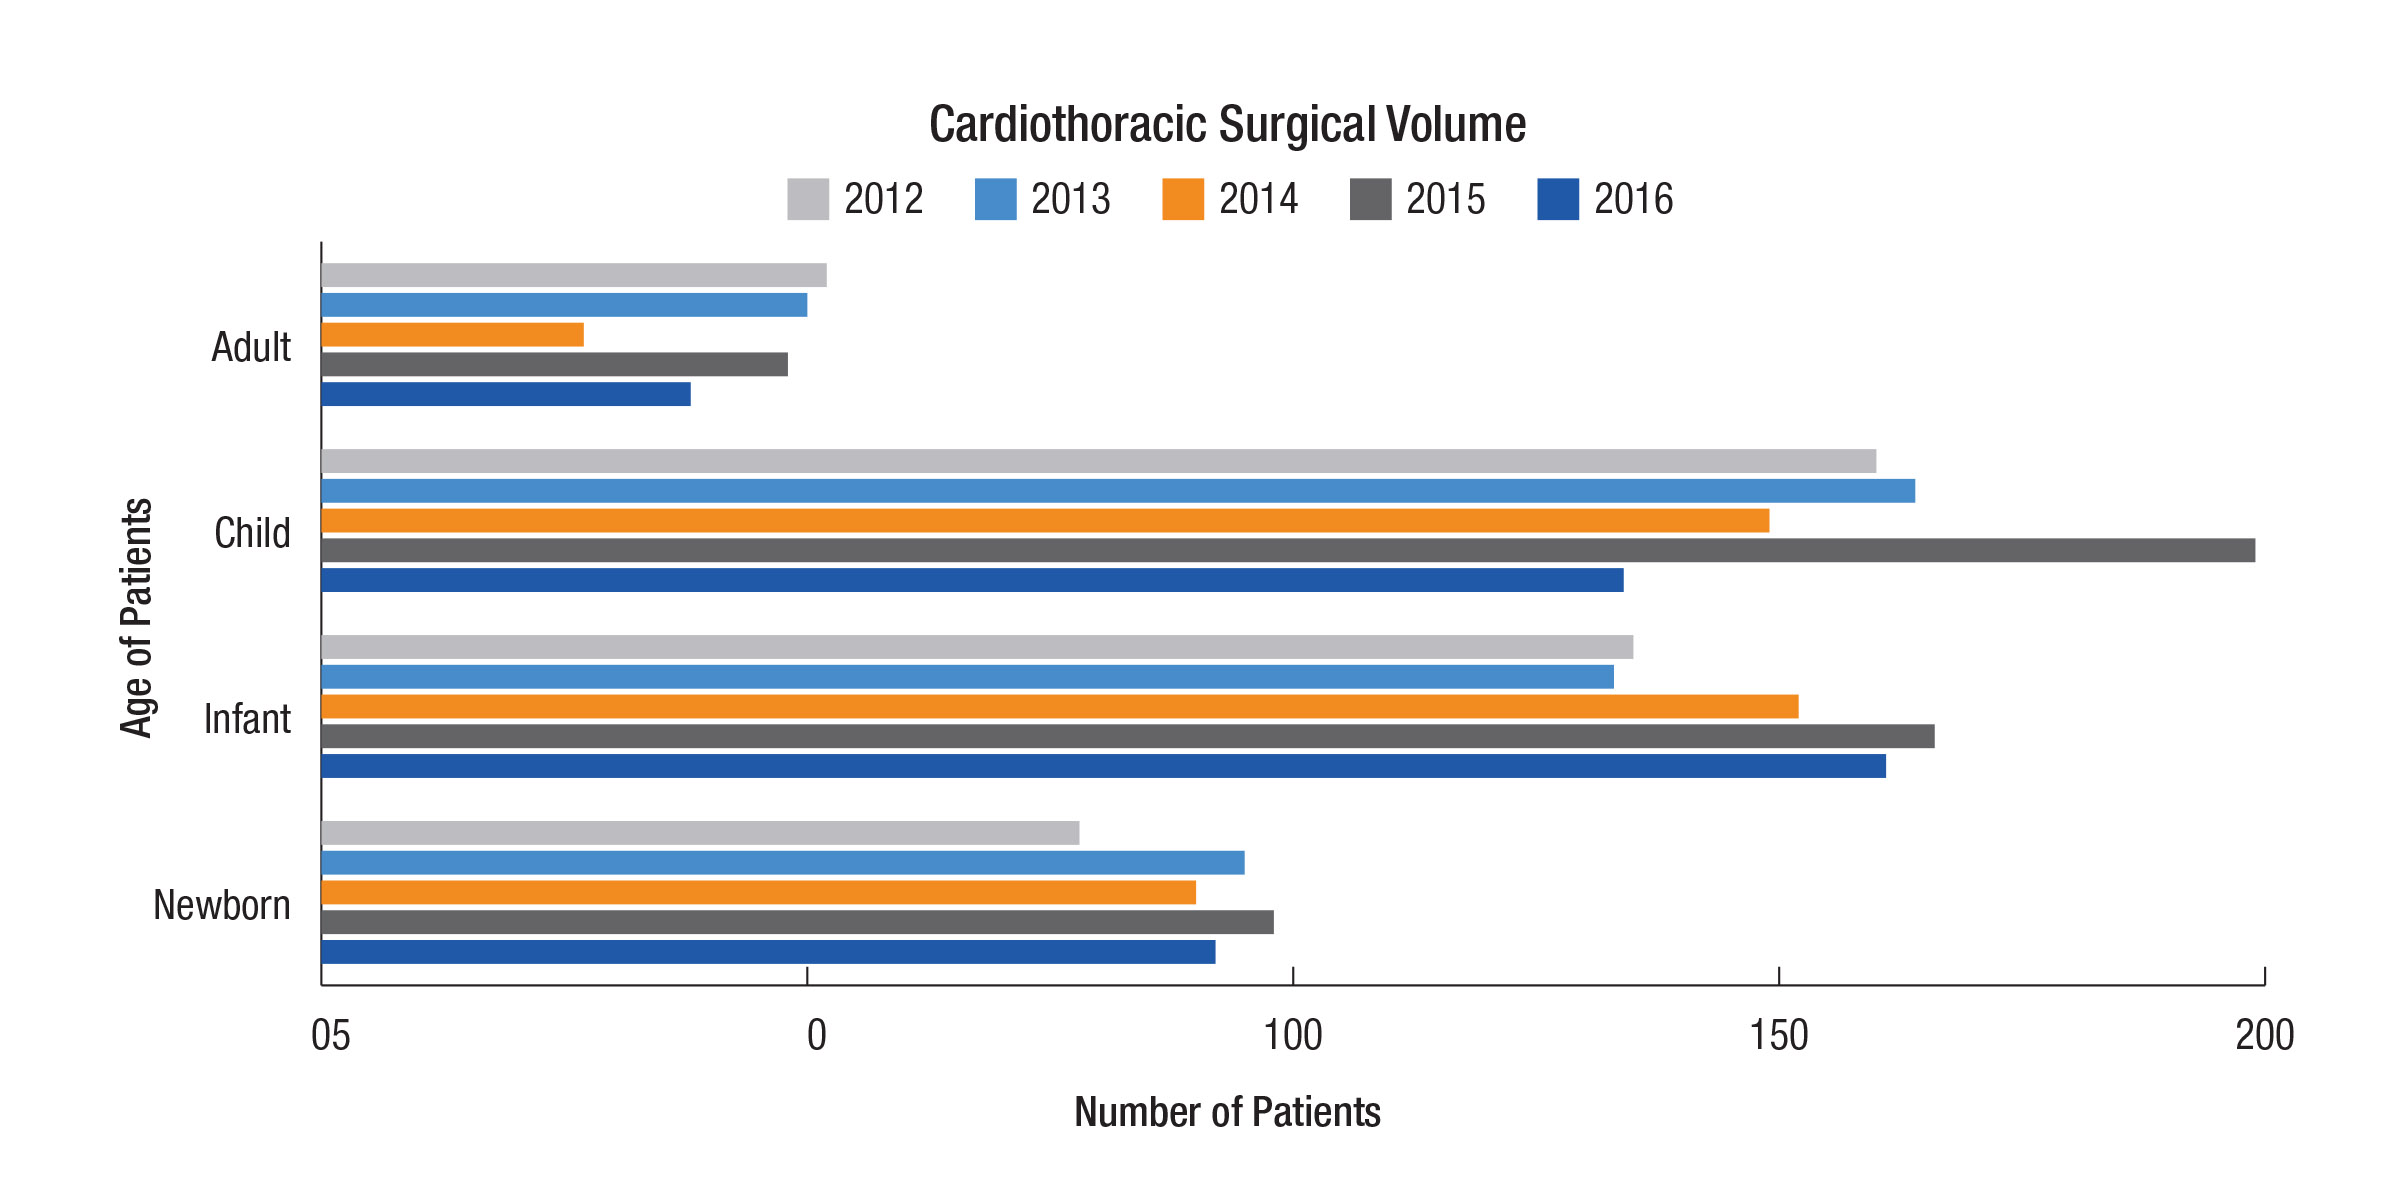 Cardiothoracic Surgical Volumes